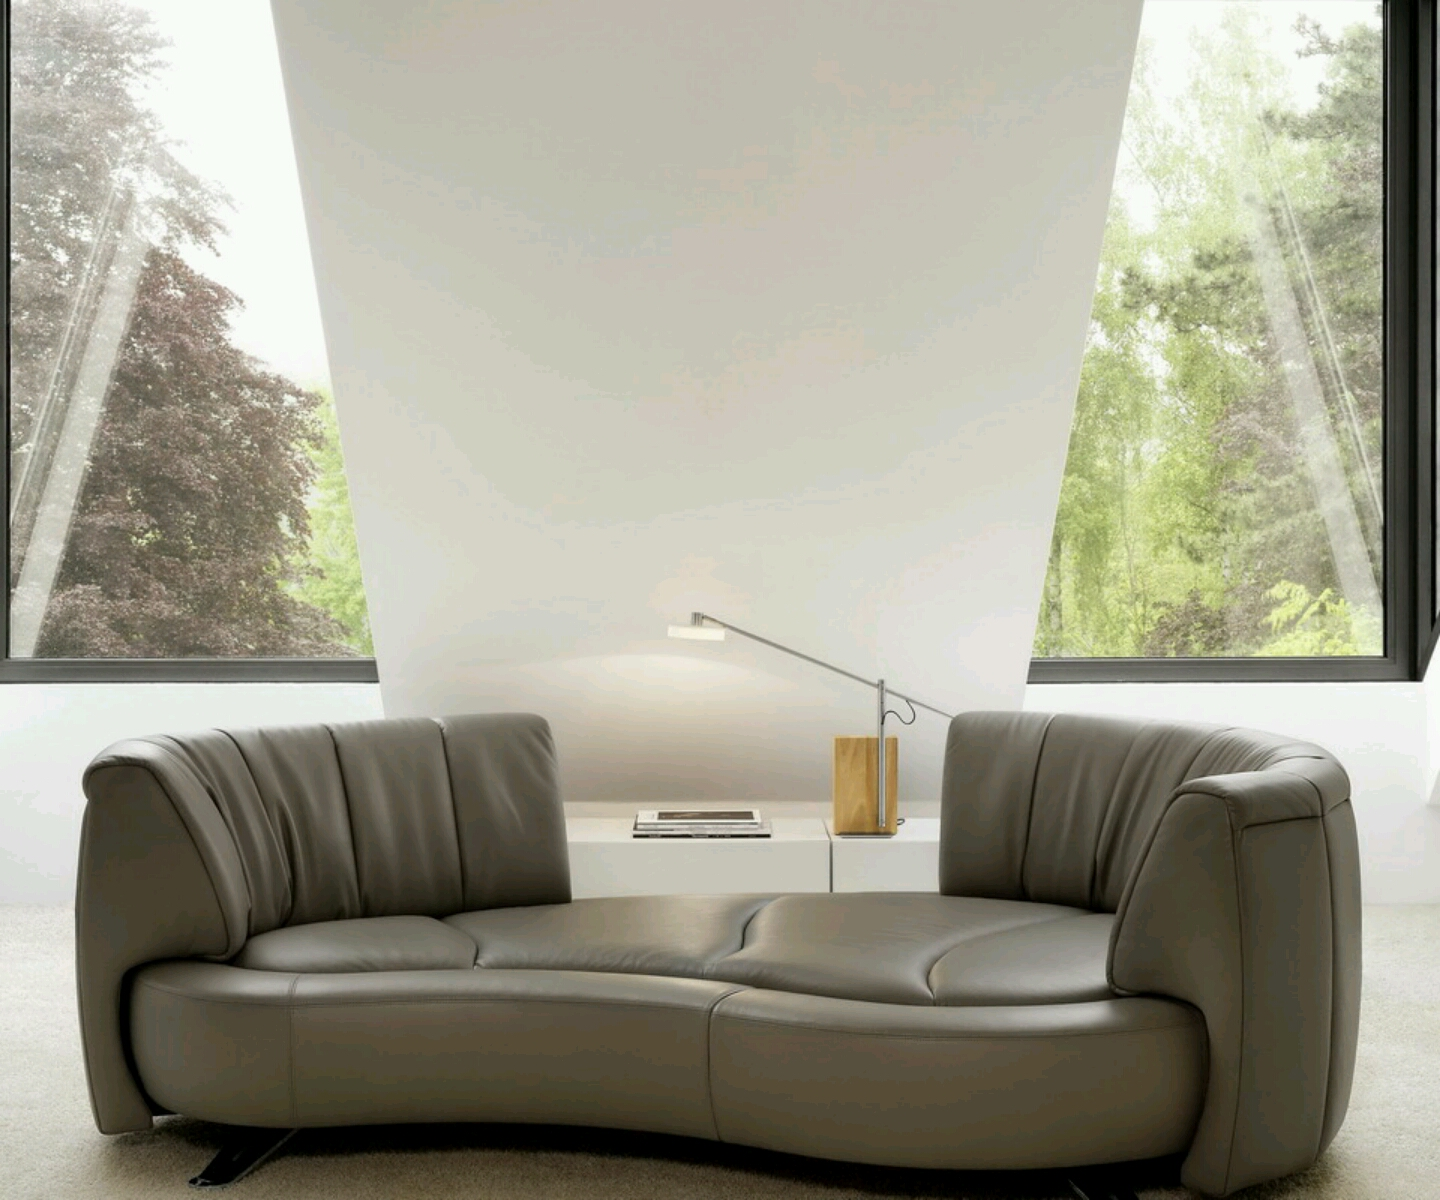 Modern Sofa Chair Designs: Modern Sofa Designs Latest.